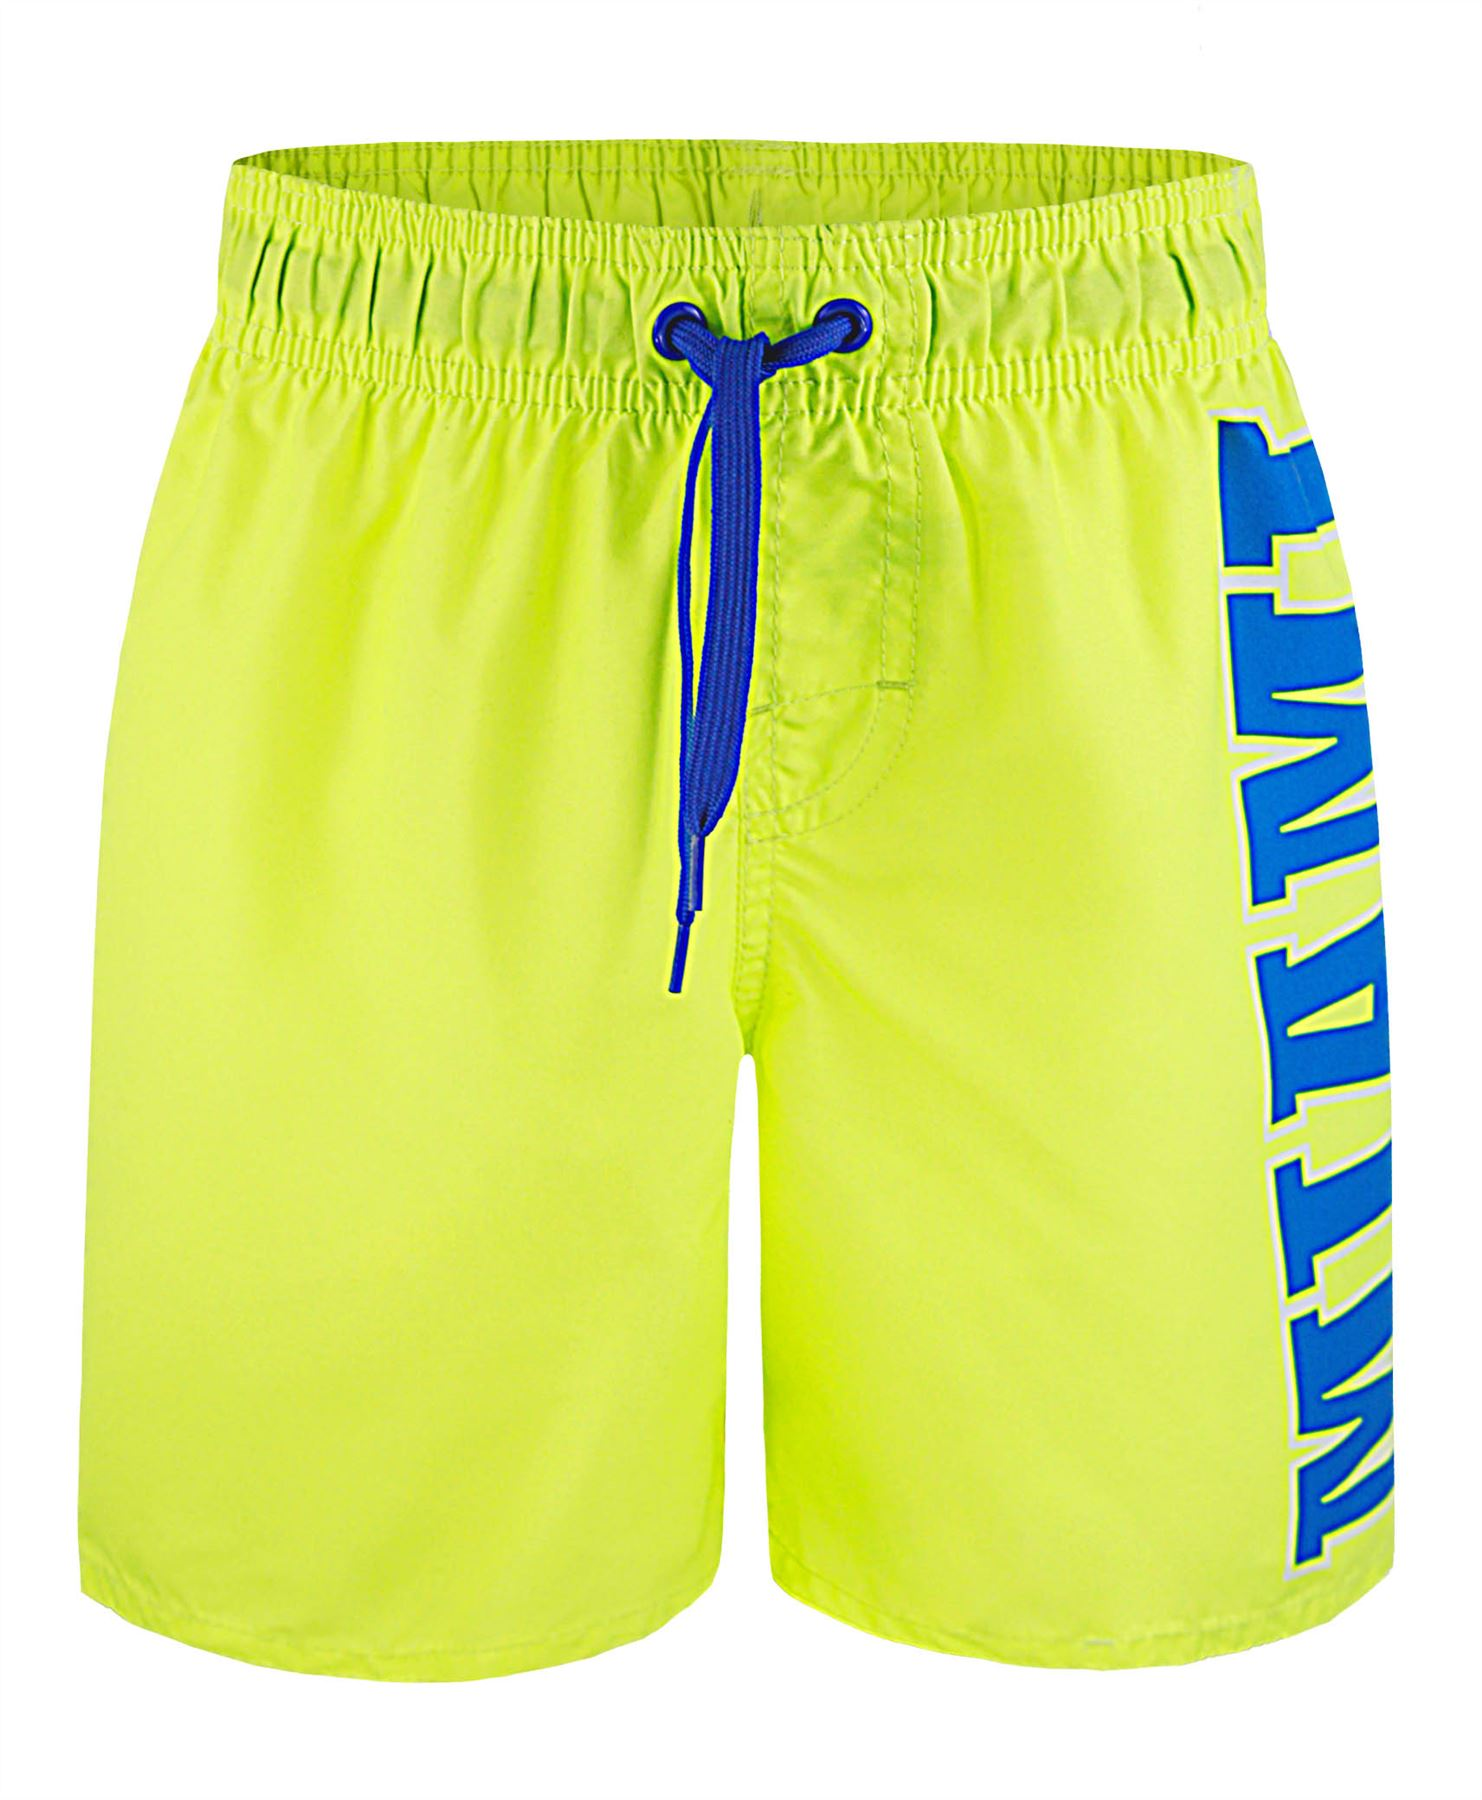 Cheap summer shorts boys, Buy Quality boys cotton shorts directly from China boys summer shorts Suppliers: COSPOT Yrs Baby Boys Summer Shorts Boy's Cotton Shorts Toddler Children Short Pants Kids Summer Clothing New Arrival 30 Enjoy .